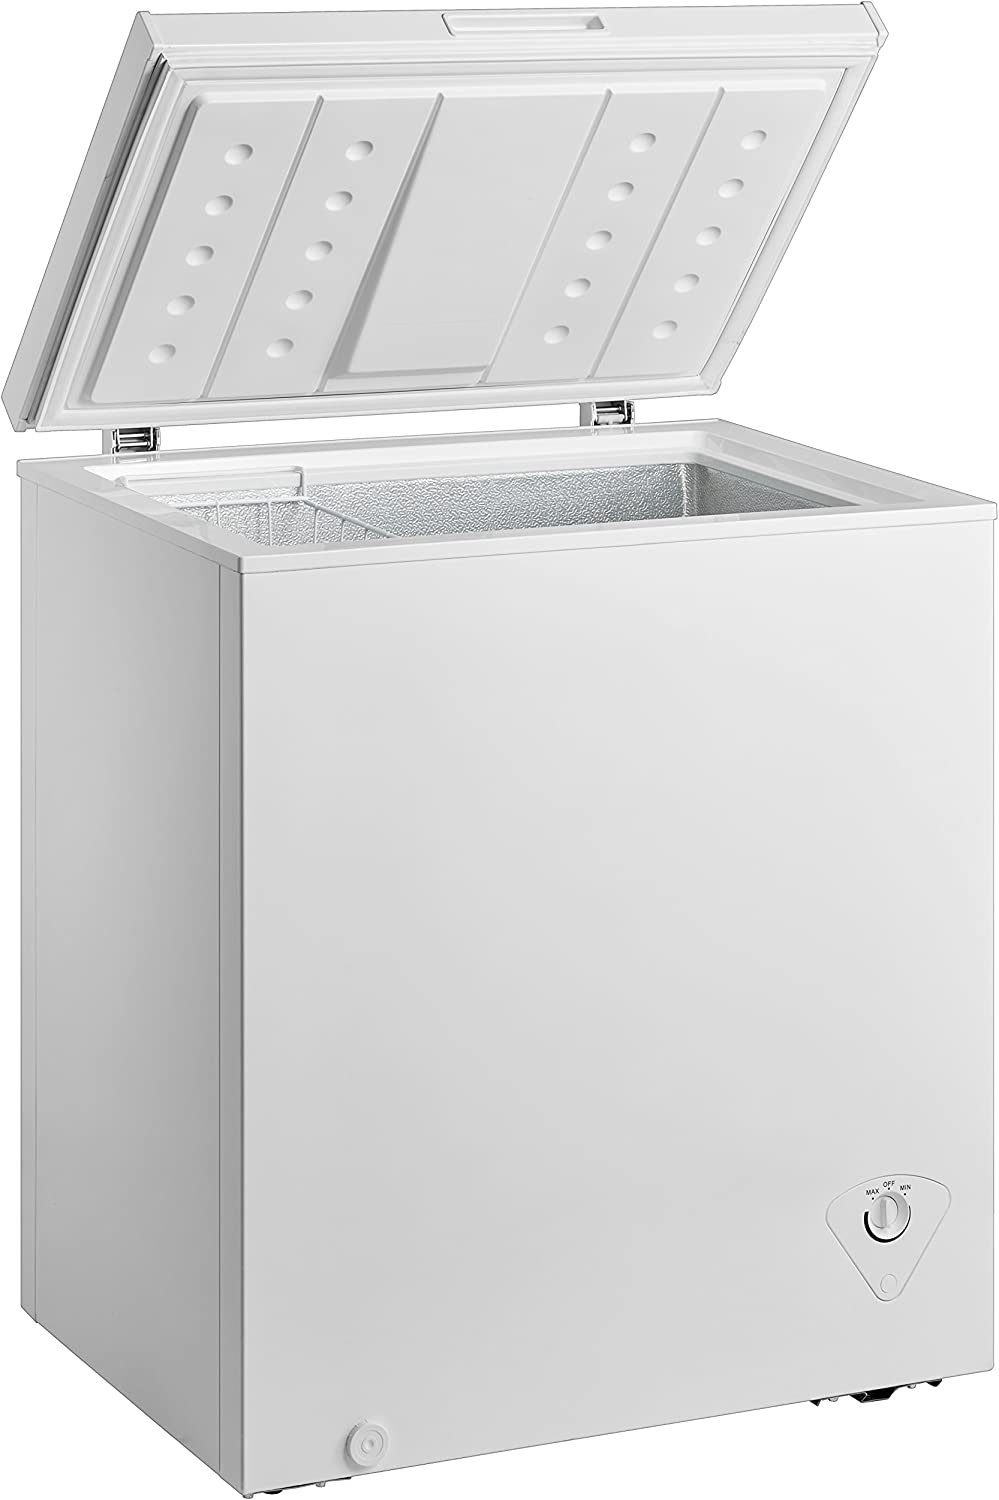 71uRTrJvDeL. AC SL1500 The 6 Best Freezers With Auto Defrost for 2021 (Review)